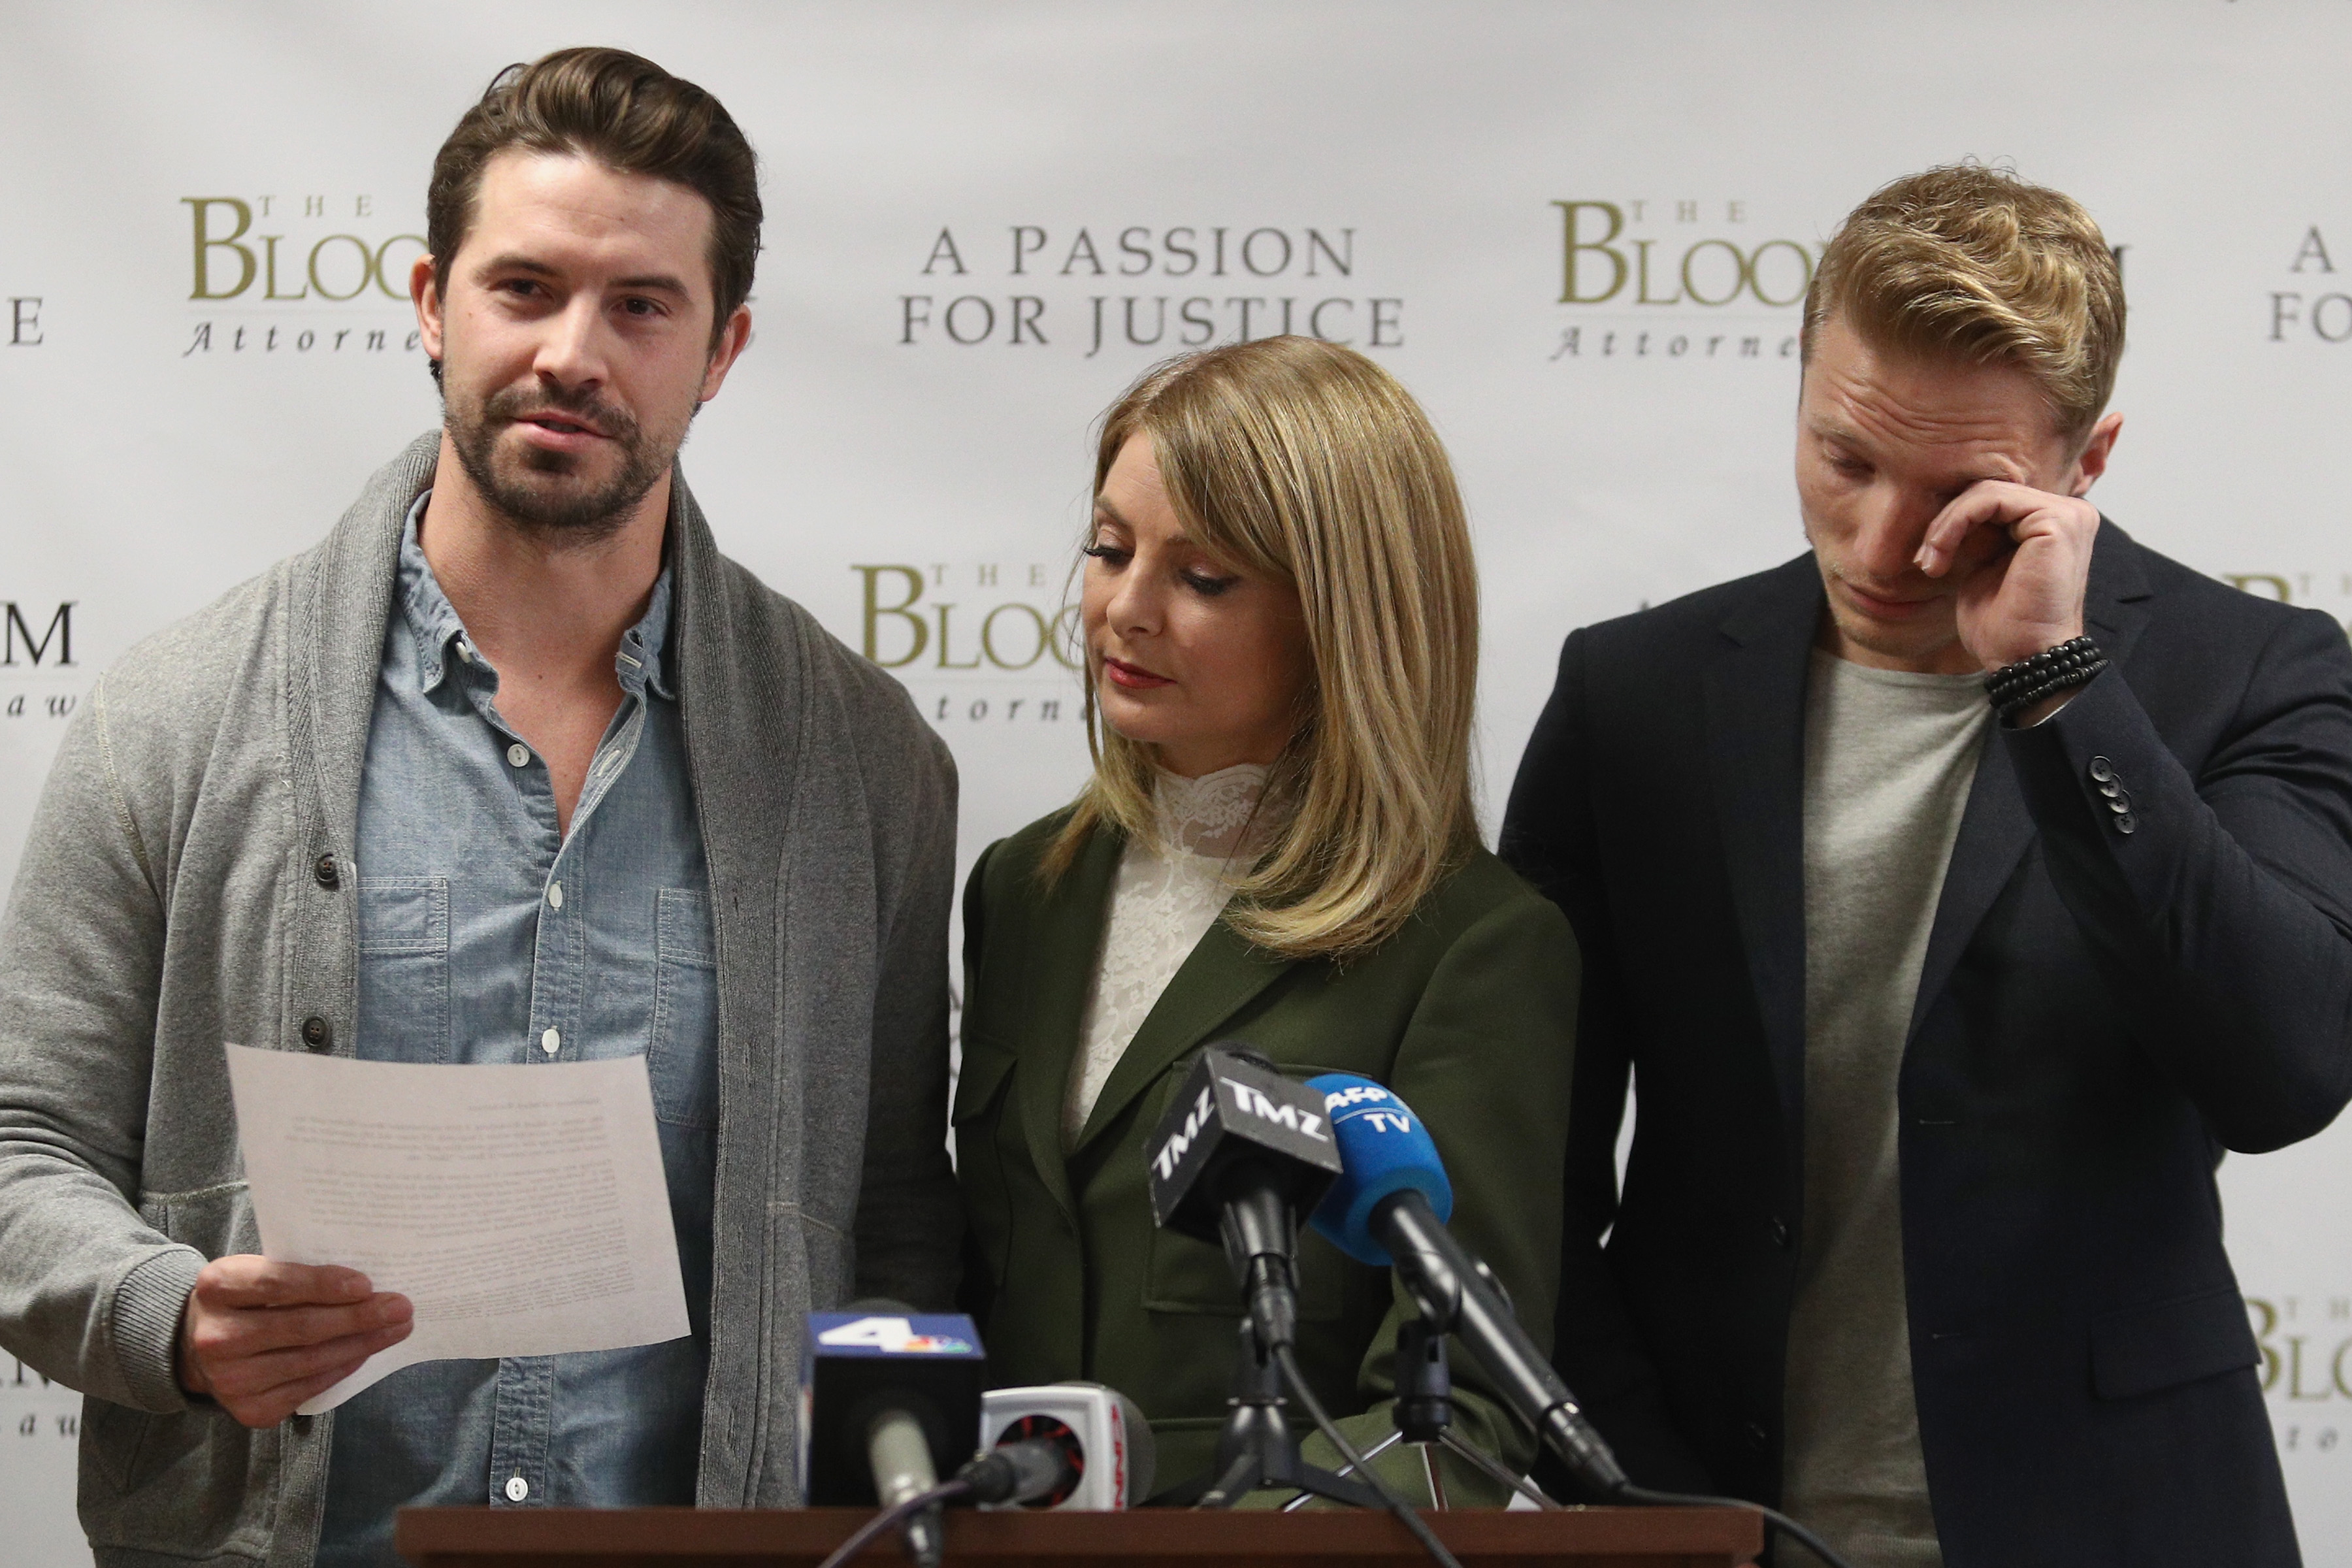 Model Mark Ricketson (l) reads a statement at The Bloom Firm accusing photographer Bruce Weber of sexual misconduct. Attorney Lisa Bloom and former model Jason Boyce stand beside him.